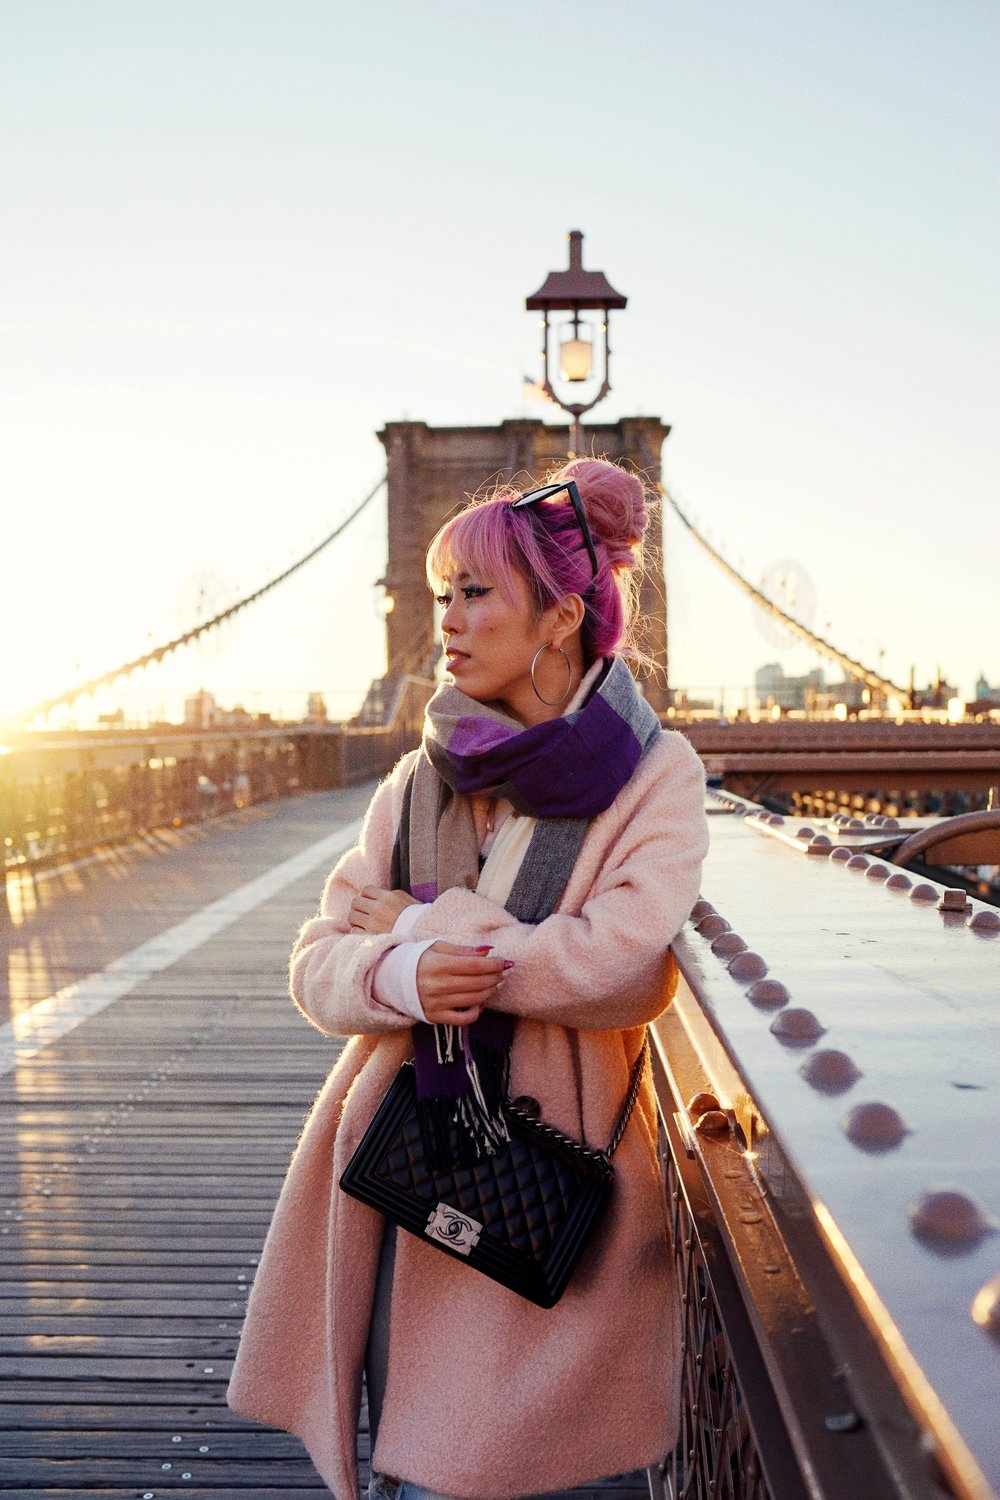 GAP Scarf-Zara pink coat-MOUSSY- frayed hem jeans- CHANEL Lambskin Quilted Medium Boy Flap Black-Adidas Superstar Shoes-Urban Outfitters Sunglasses-Aika's Love Closet-Sealtle fashion style blogger from japan-pink hair-brooklyn bridge-new york-city 19